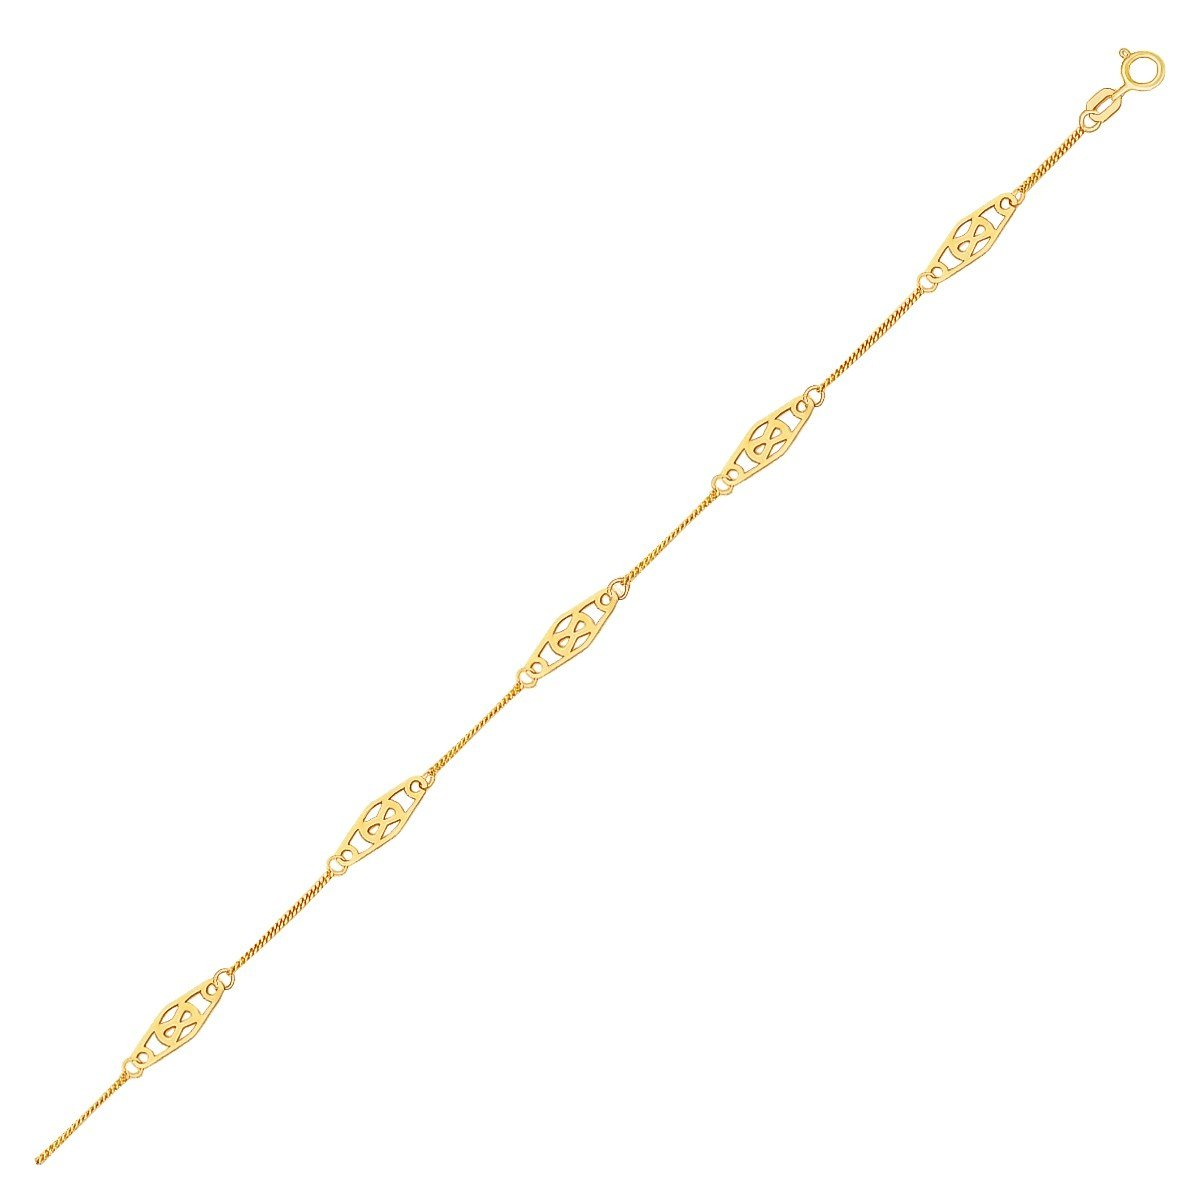 14K Yellow Gold Anklet with Fancy Diamond Shape Filigree Stations